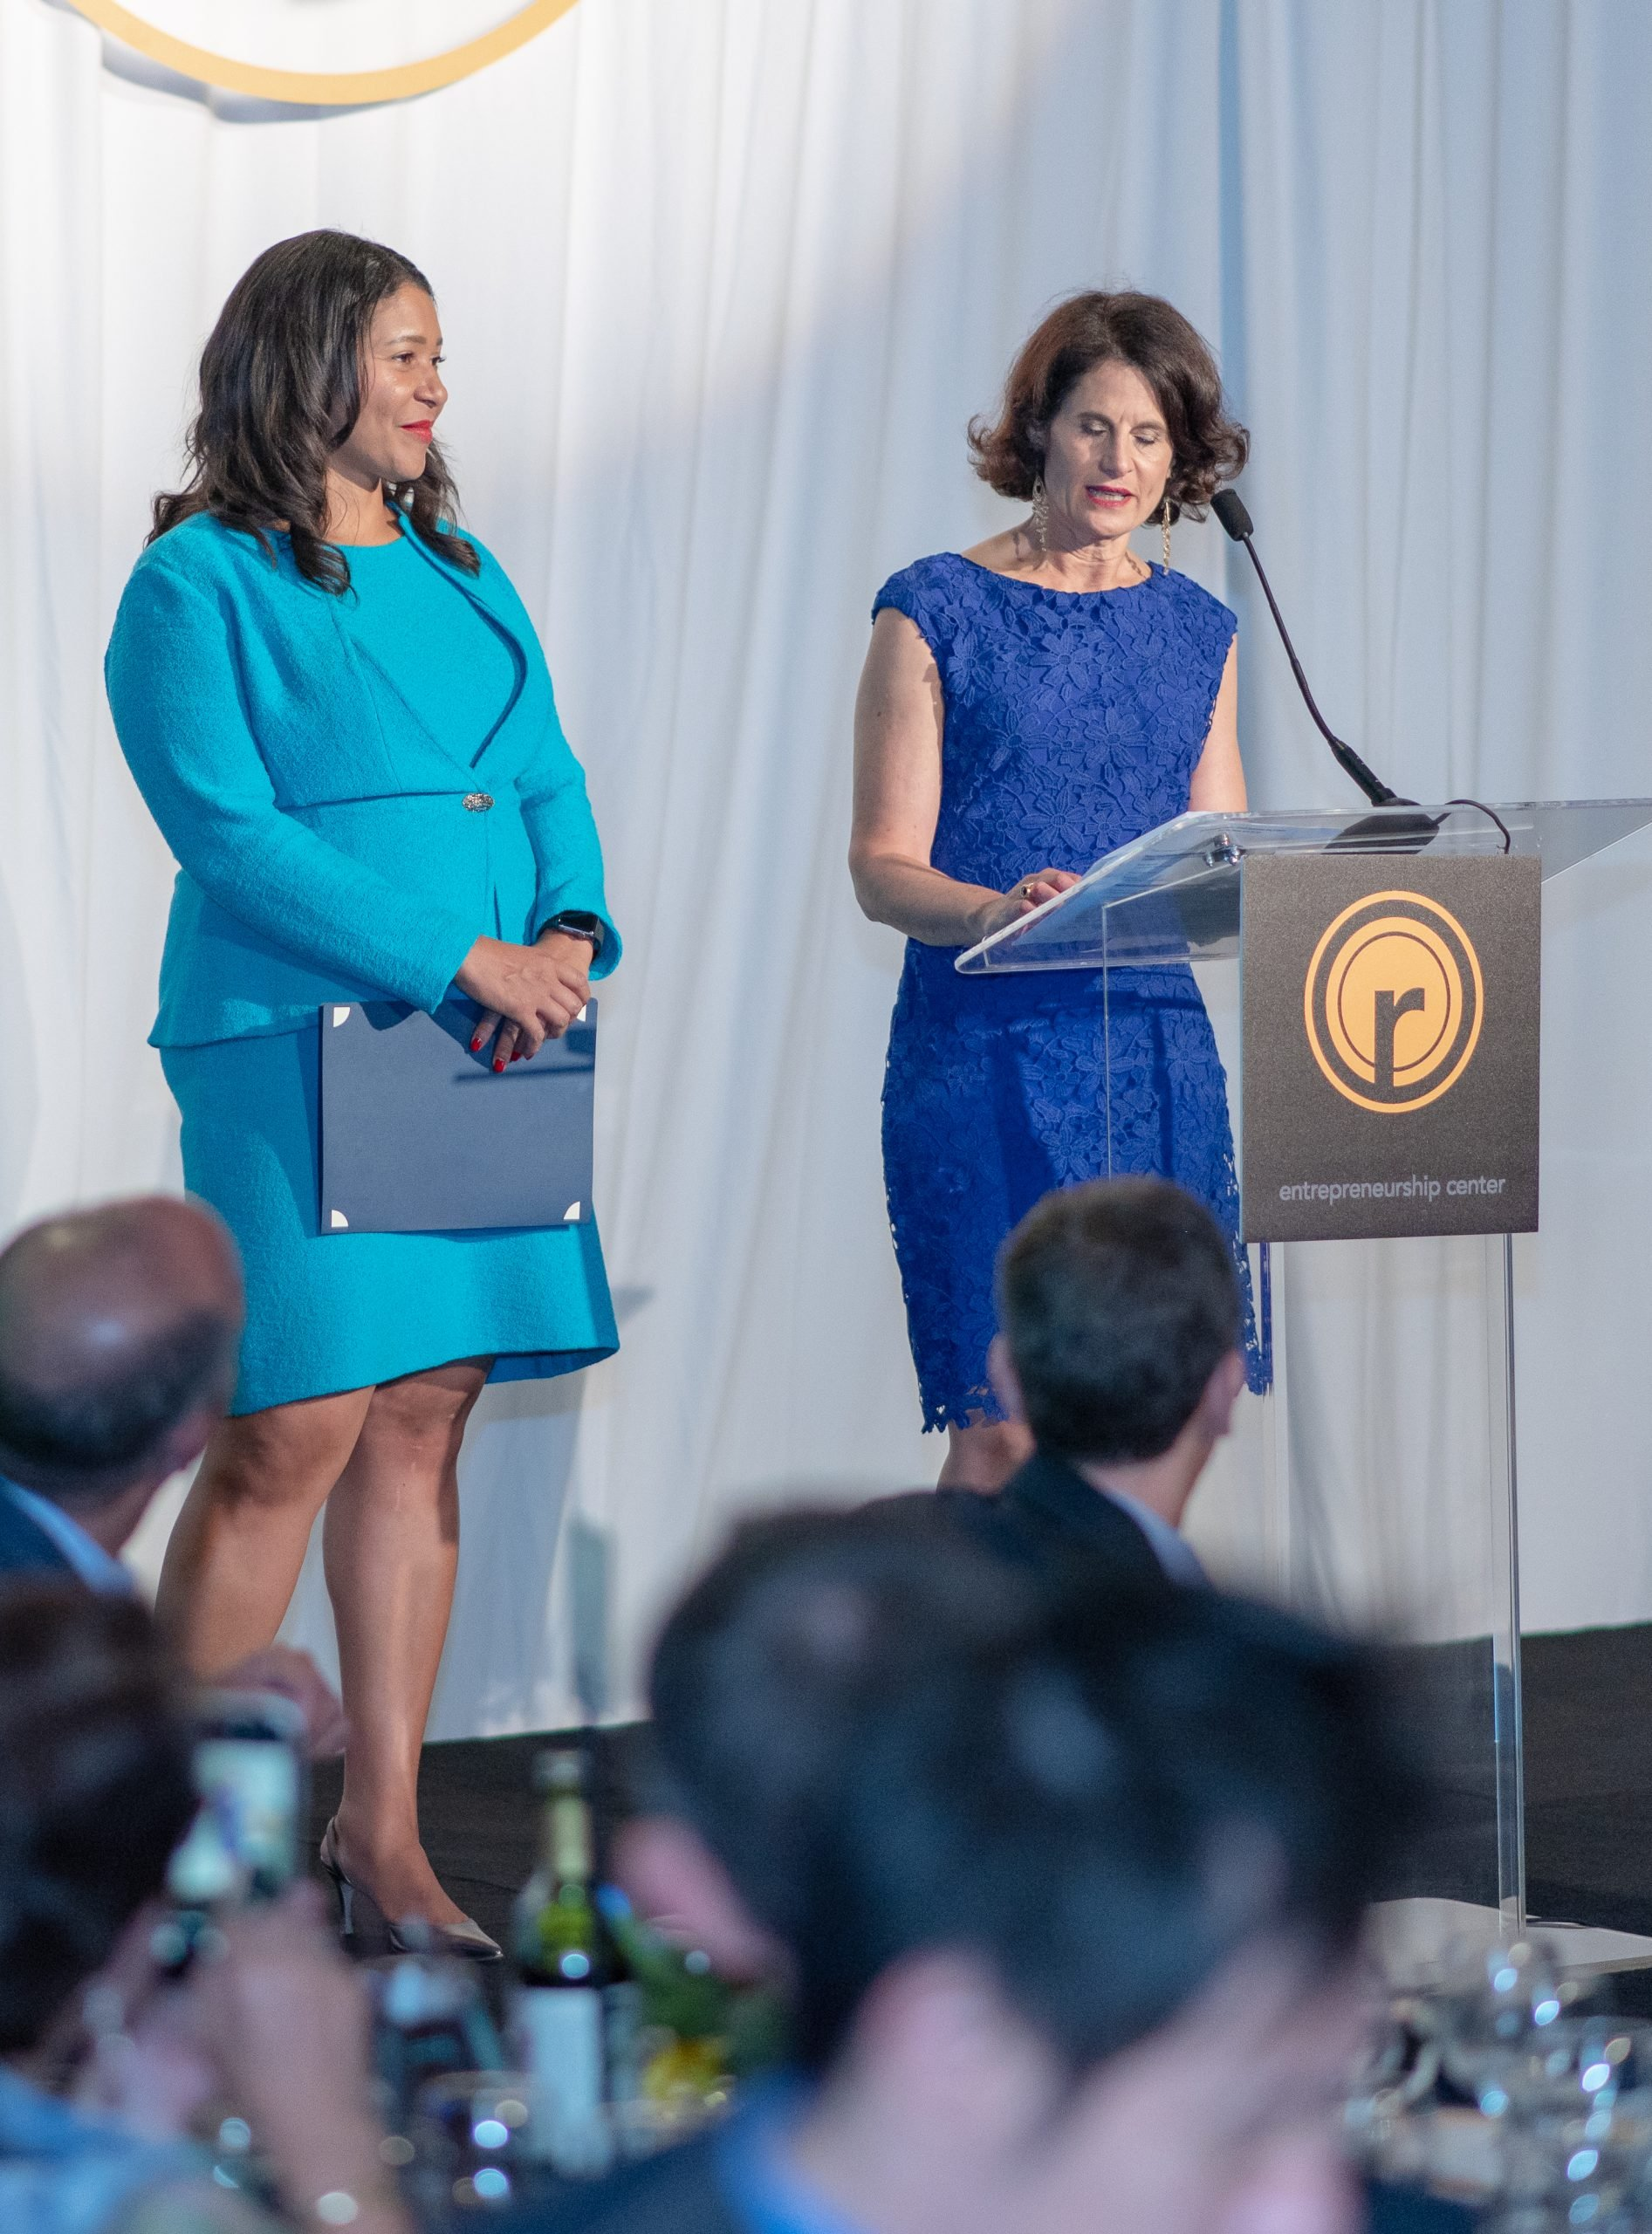 Two people in blue dresses speaking at a Renaissance Entrepreneurship Center event.